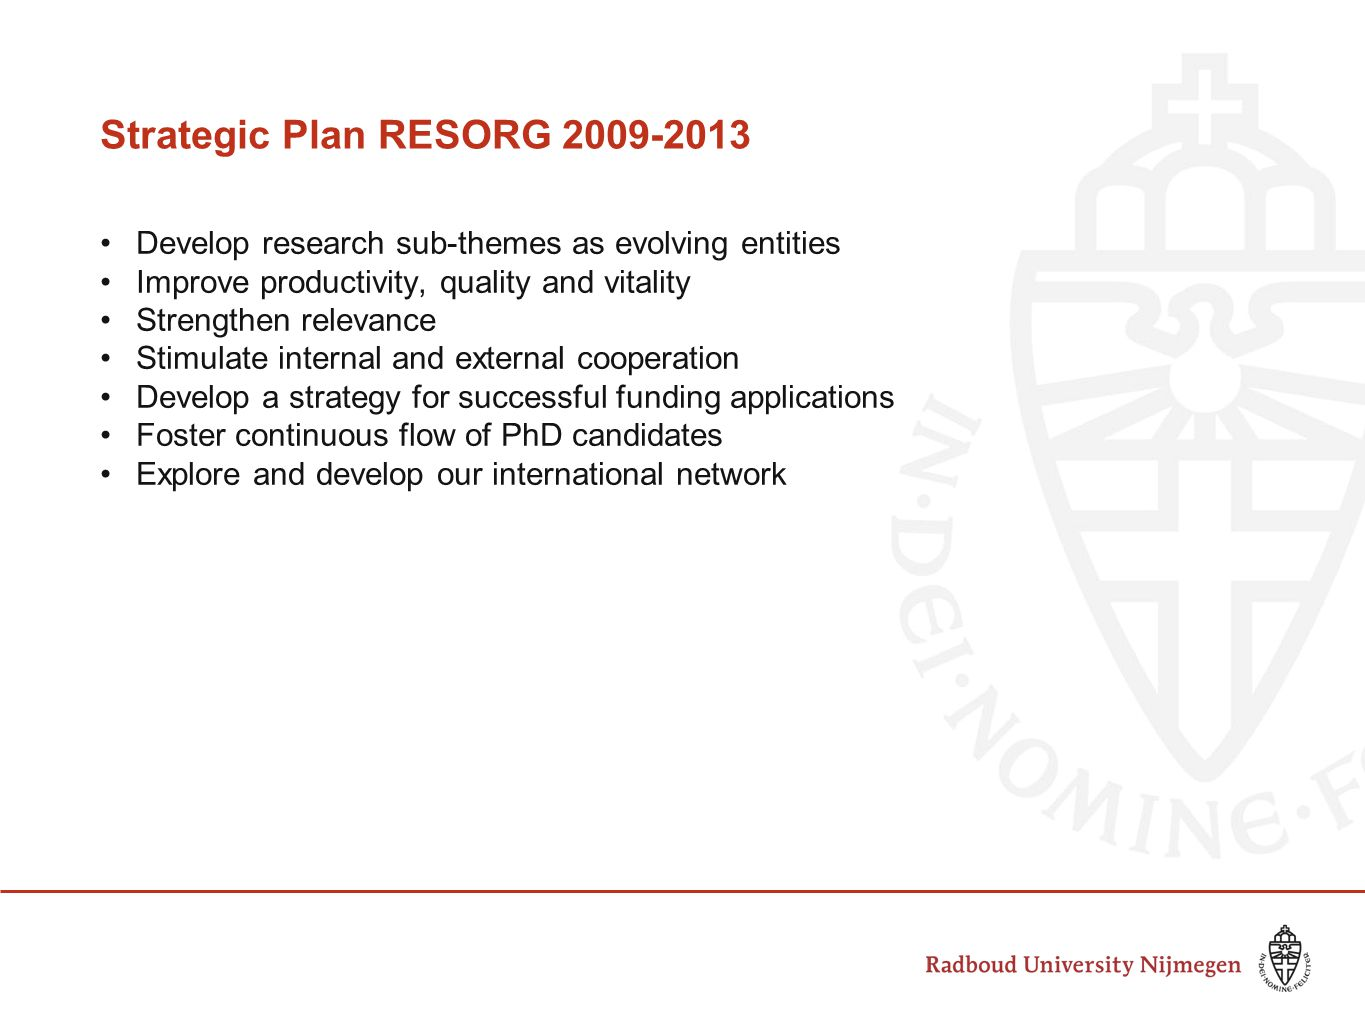 Strategic Plan RESORG Develop research sub-themes as evolving entities Improve productivity, quality and vitality Strengthen relevance Stimulate internal and external cooperation Develop a strategy for successful funding applications Foster continuous flow of PhD candidates Explore and develop our international network